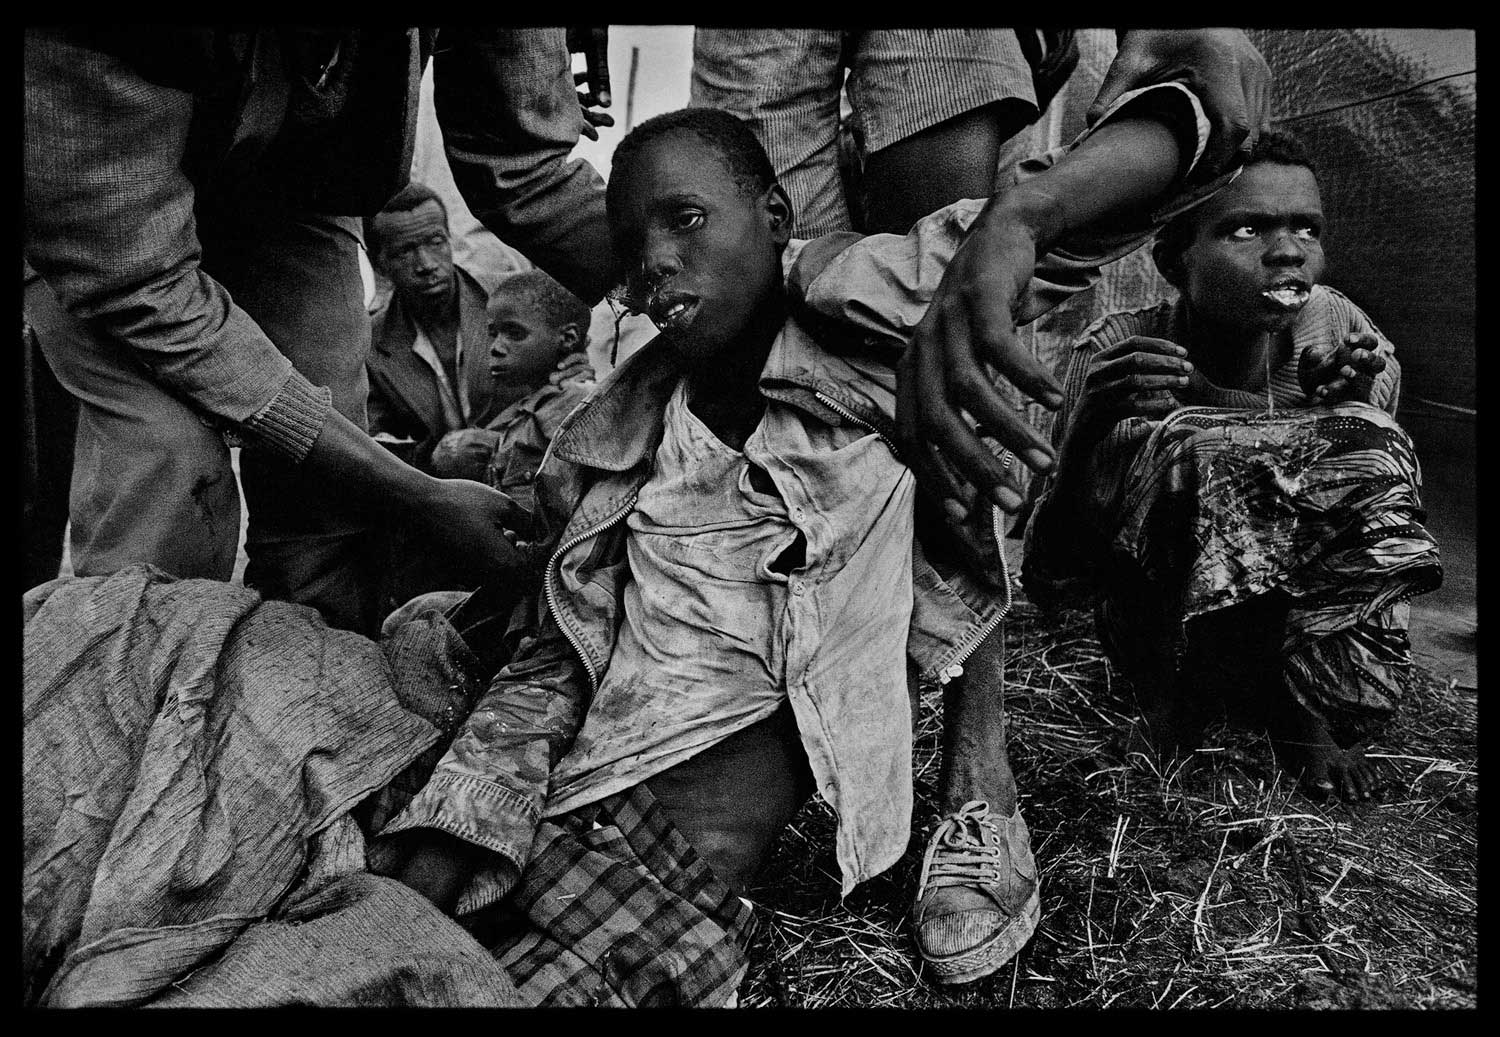 Refugees who had just been hit with cholera were brought to one of the emergency medical stations in Zaire, 1994.